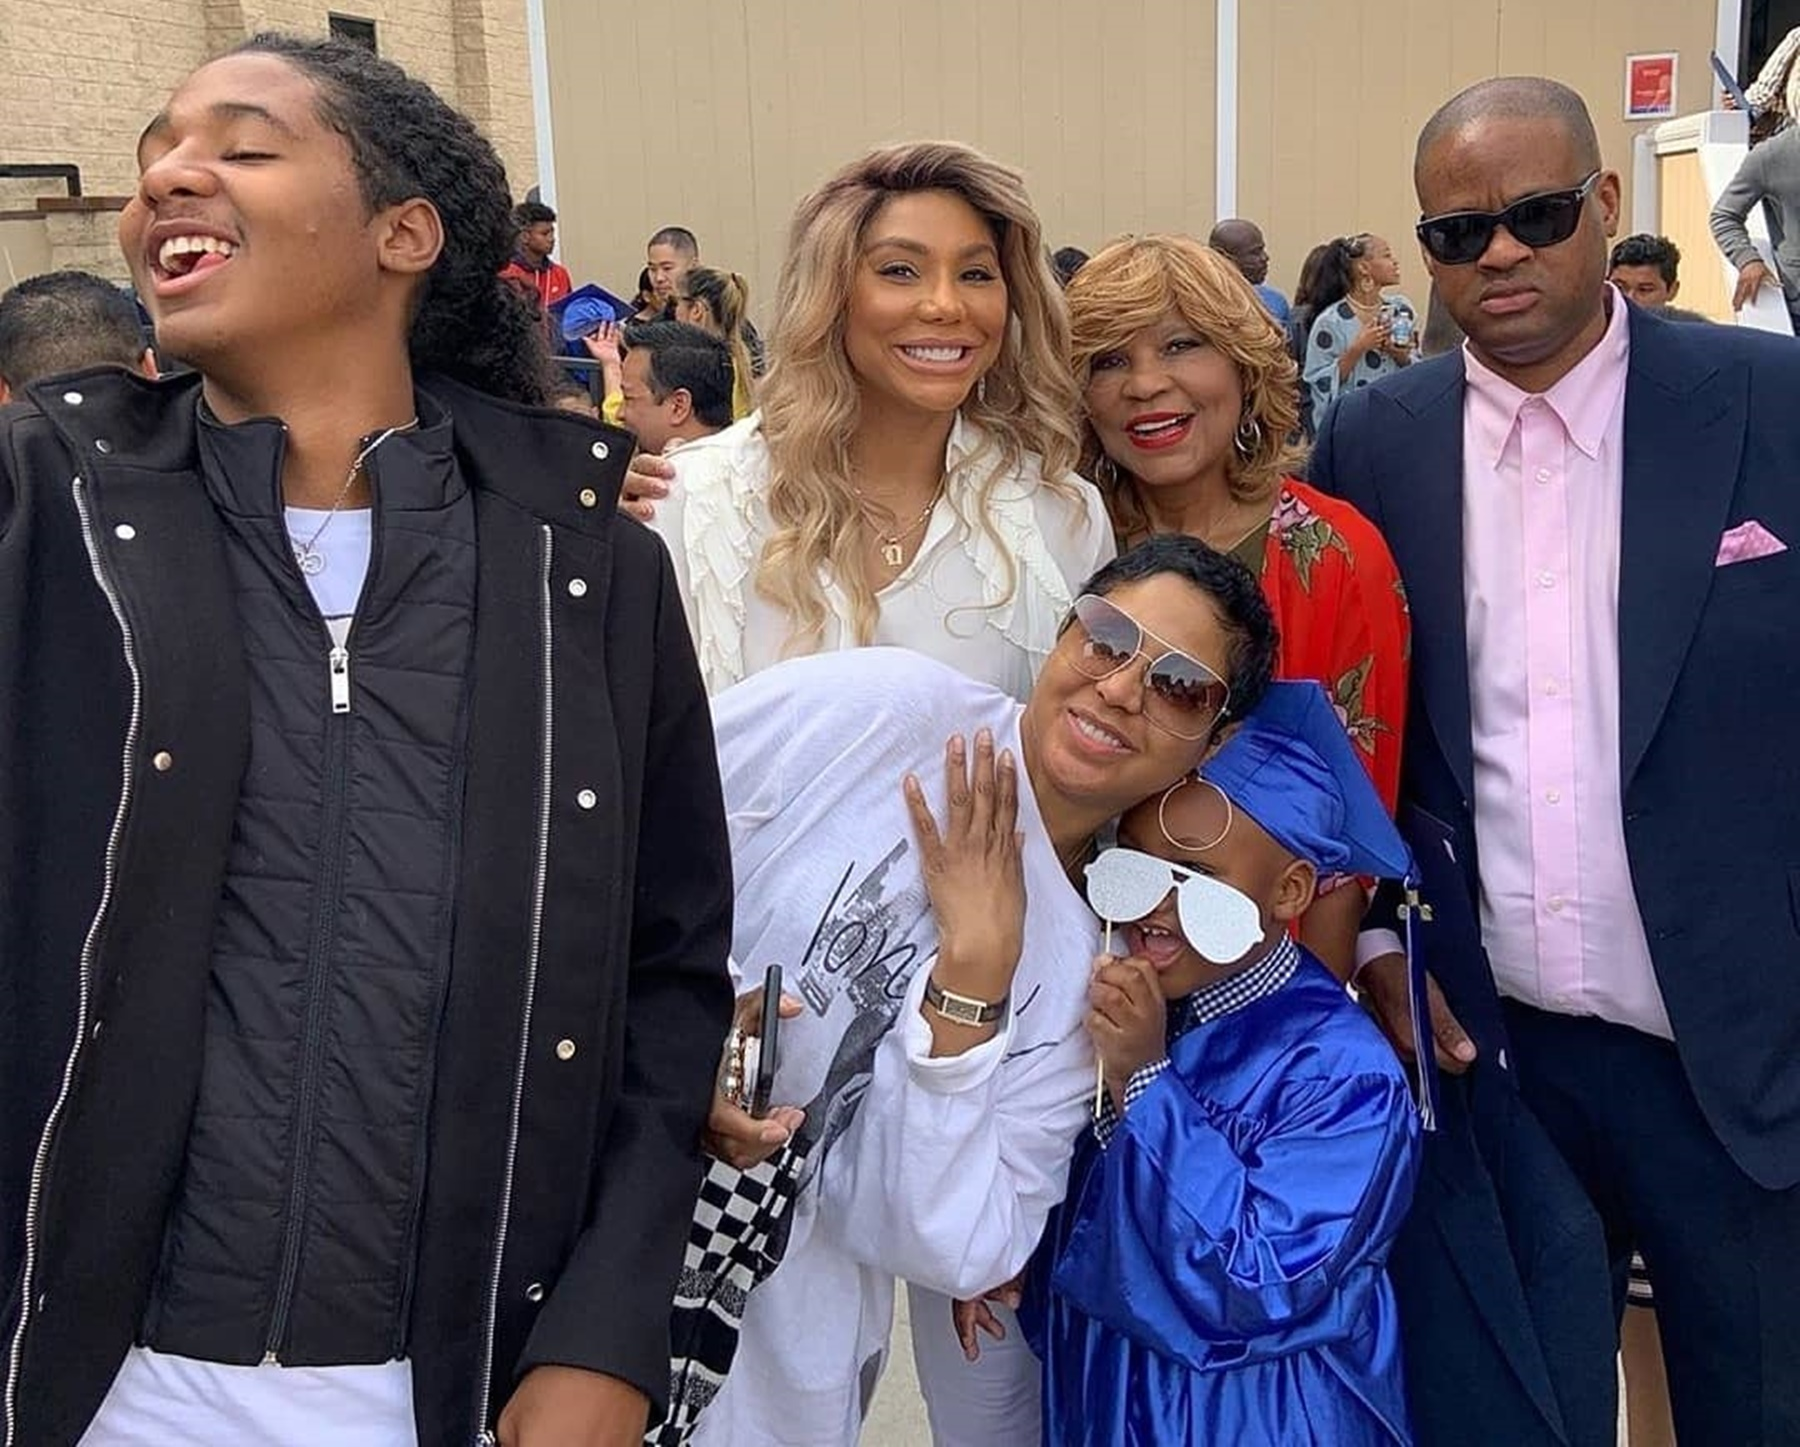 tamar-braxtons-ex-vincent-herbert-looks-angry-in-their-son-logan-graduation-picture-here-is-why-tonis-sister-may-need-to-reach-out-to-him-more